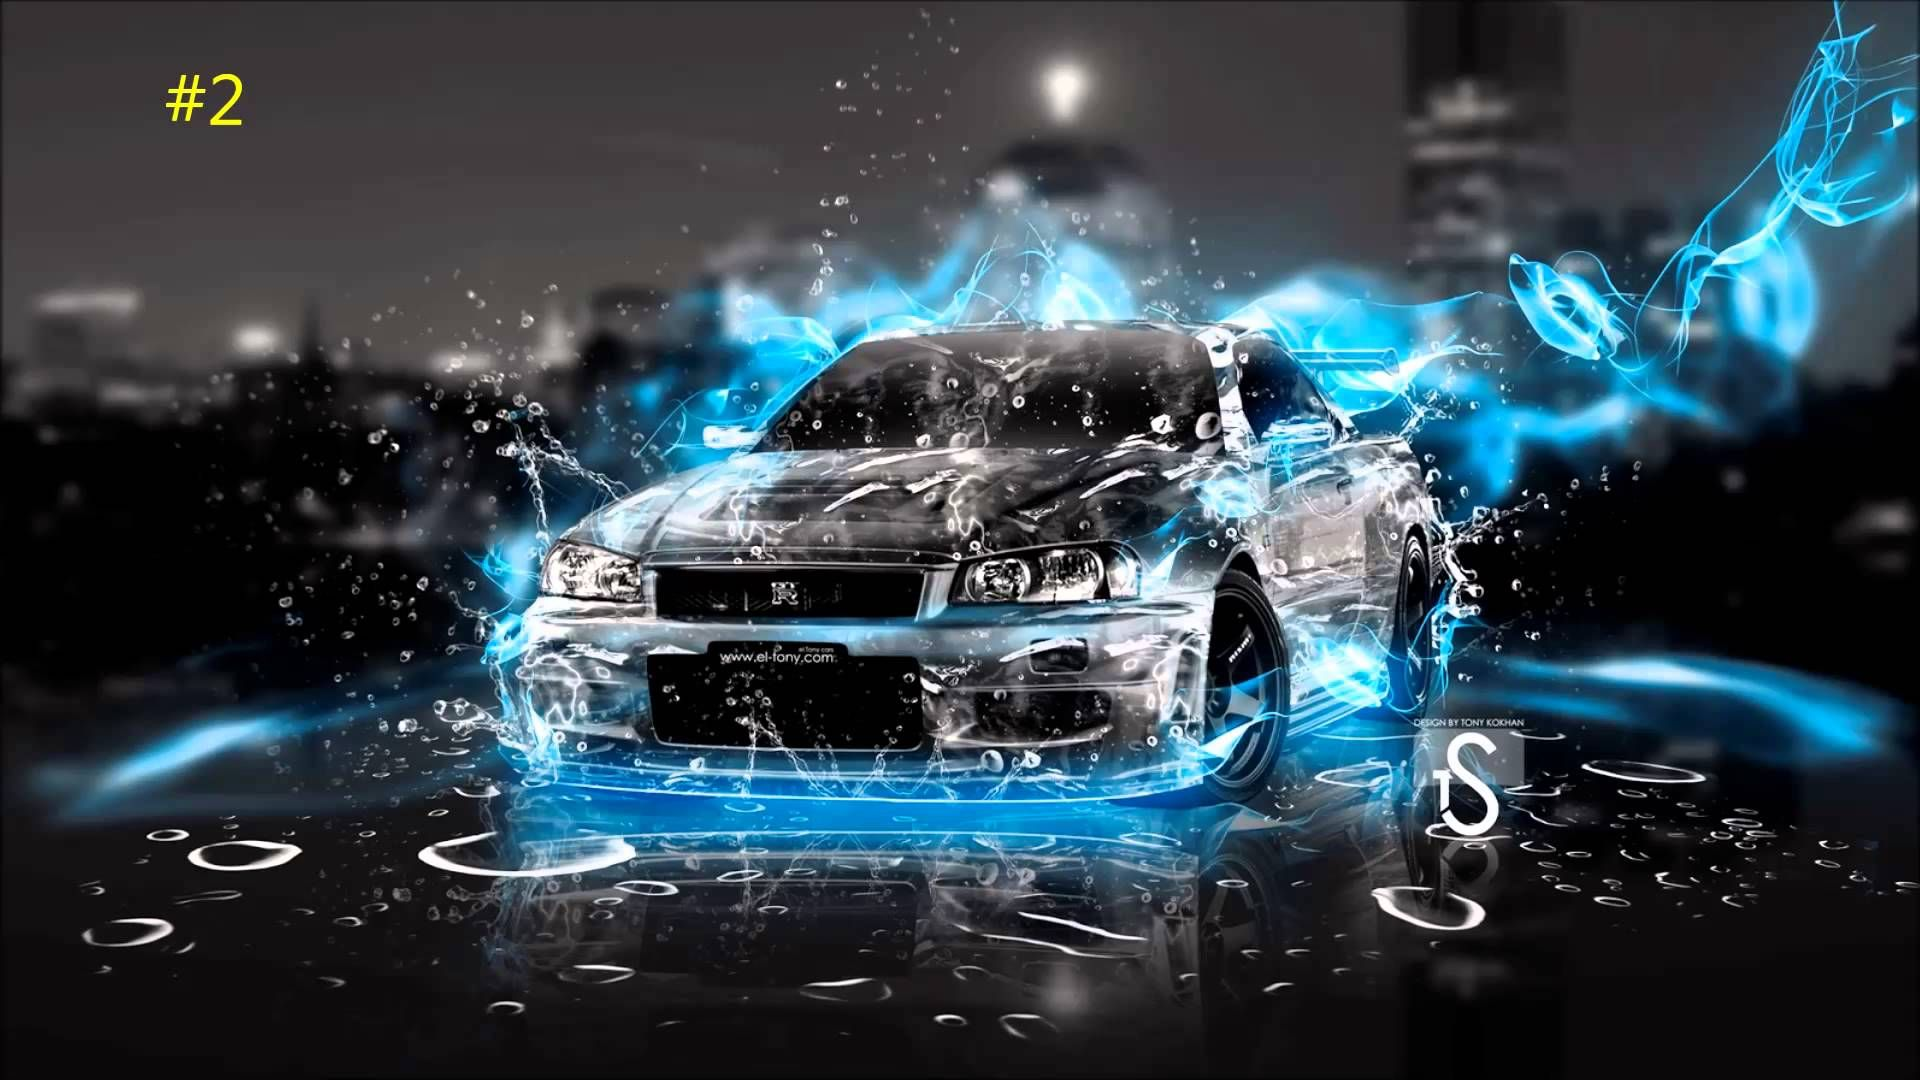 Extreme Drum And Bass Dubstep Mix 2 2015 Cool Wallpapers Cars Nissan Skyline Gtr Nissan Skyline